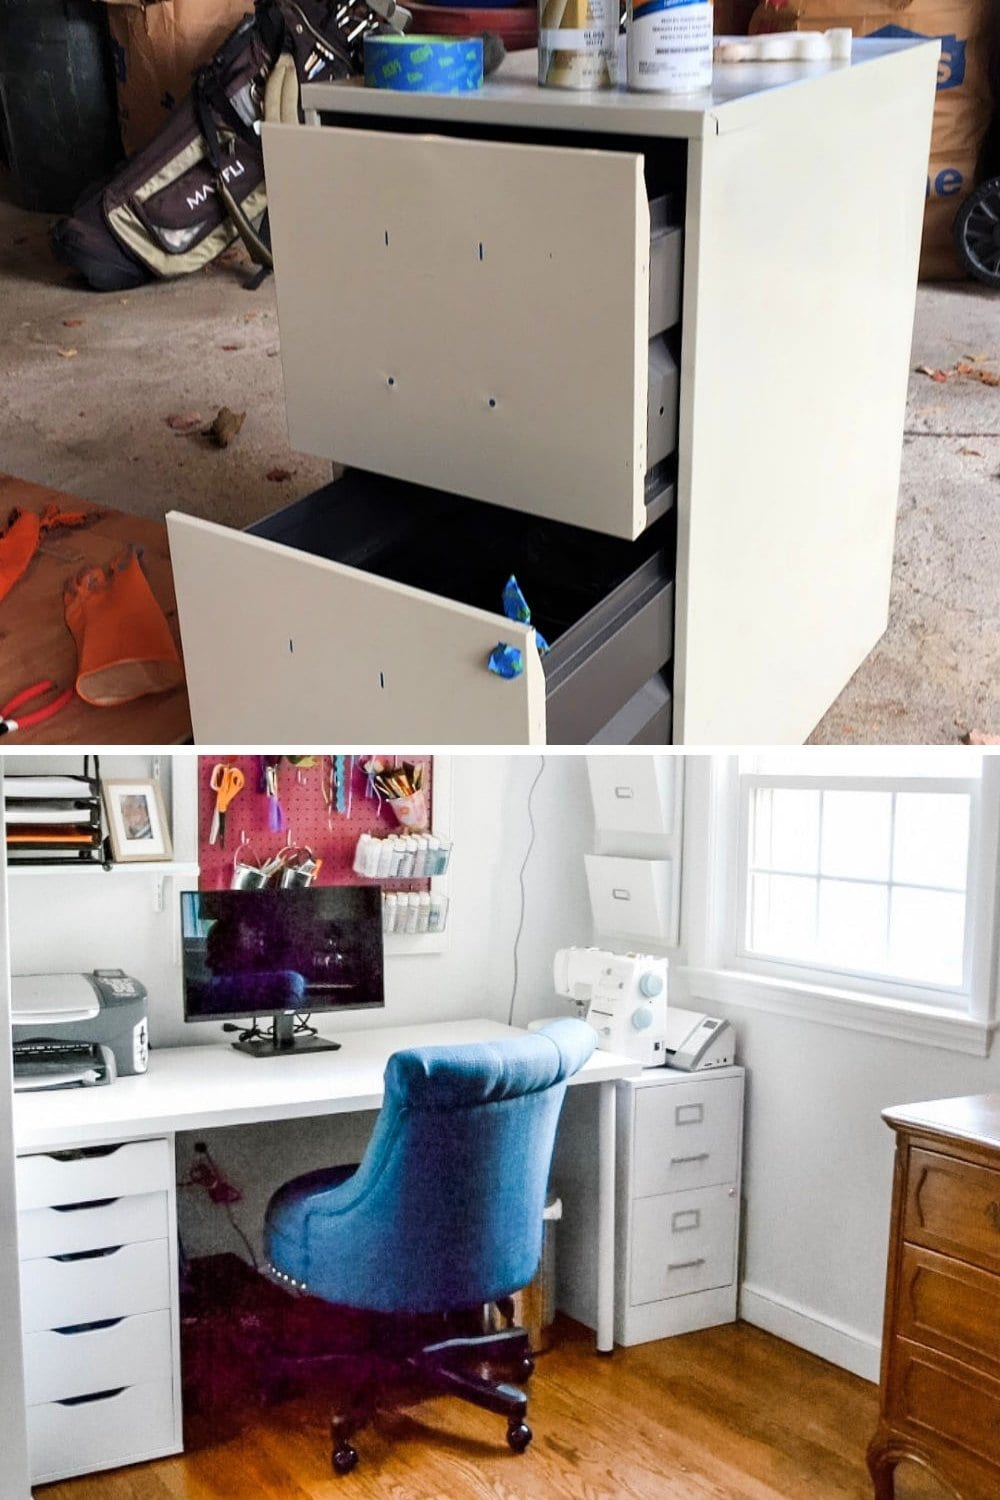 Easy DIY spray paint ideas - spray painting metal file cabinet